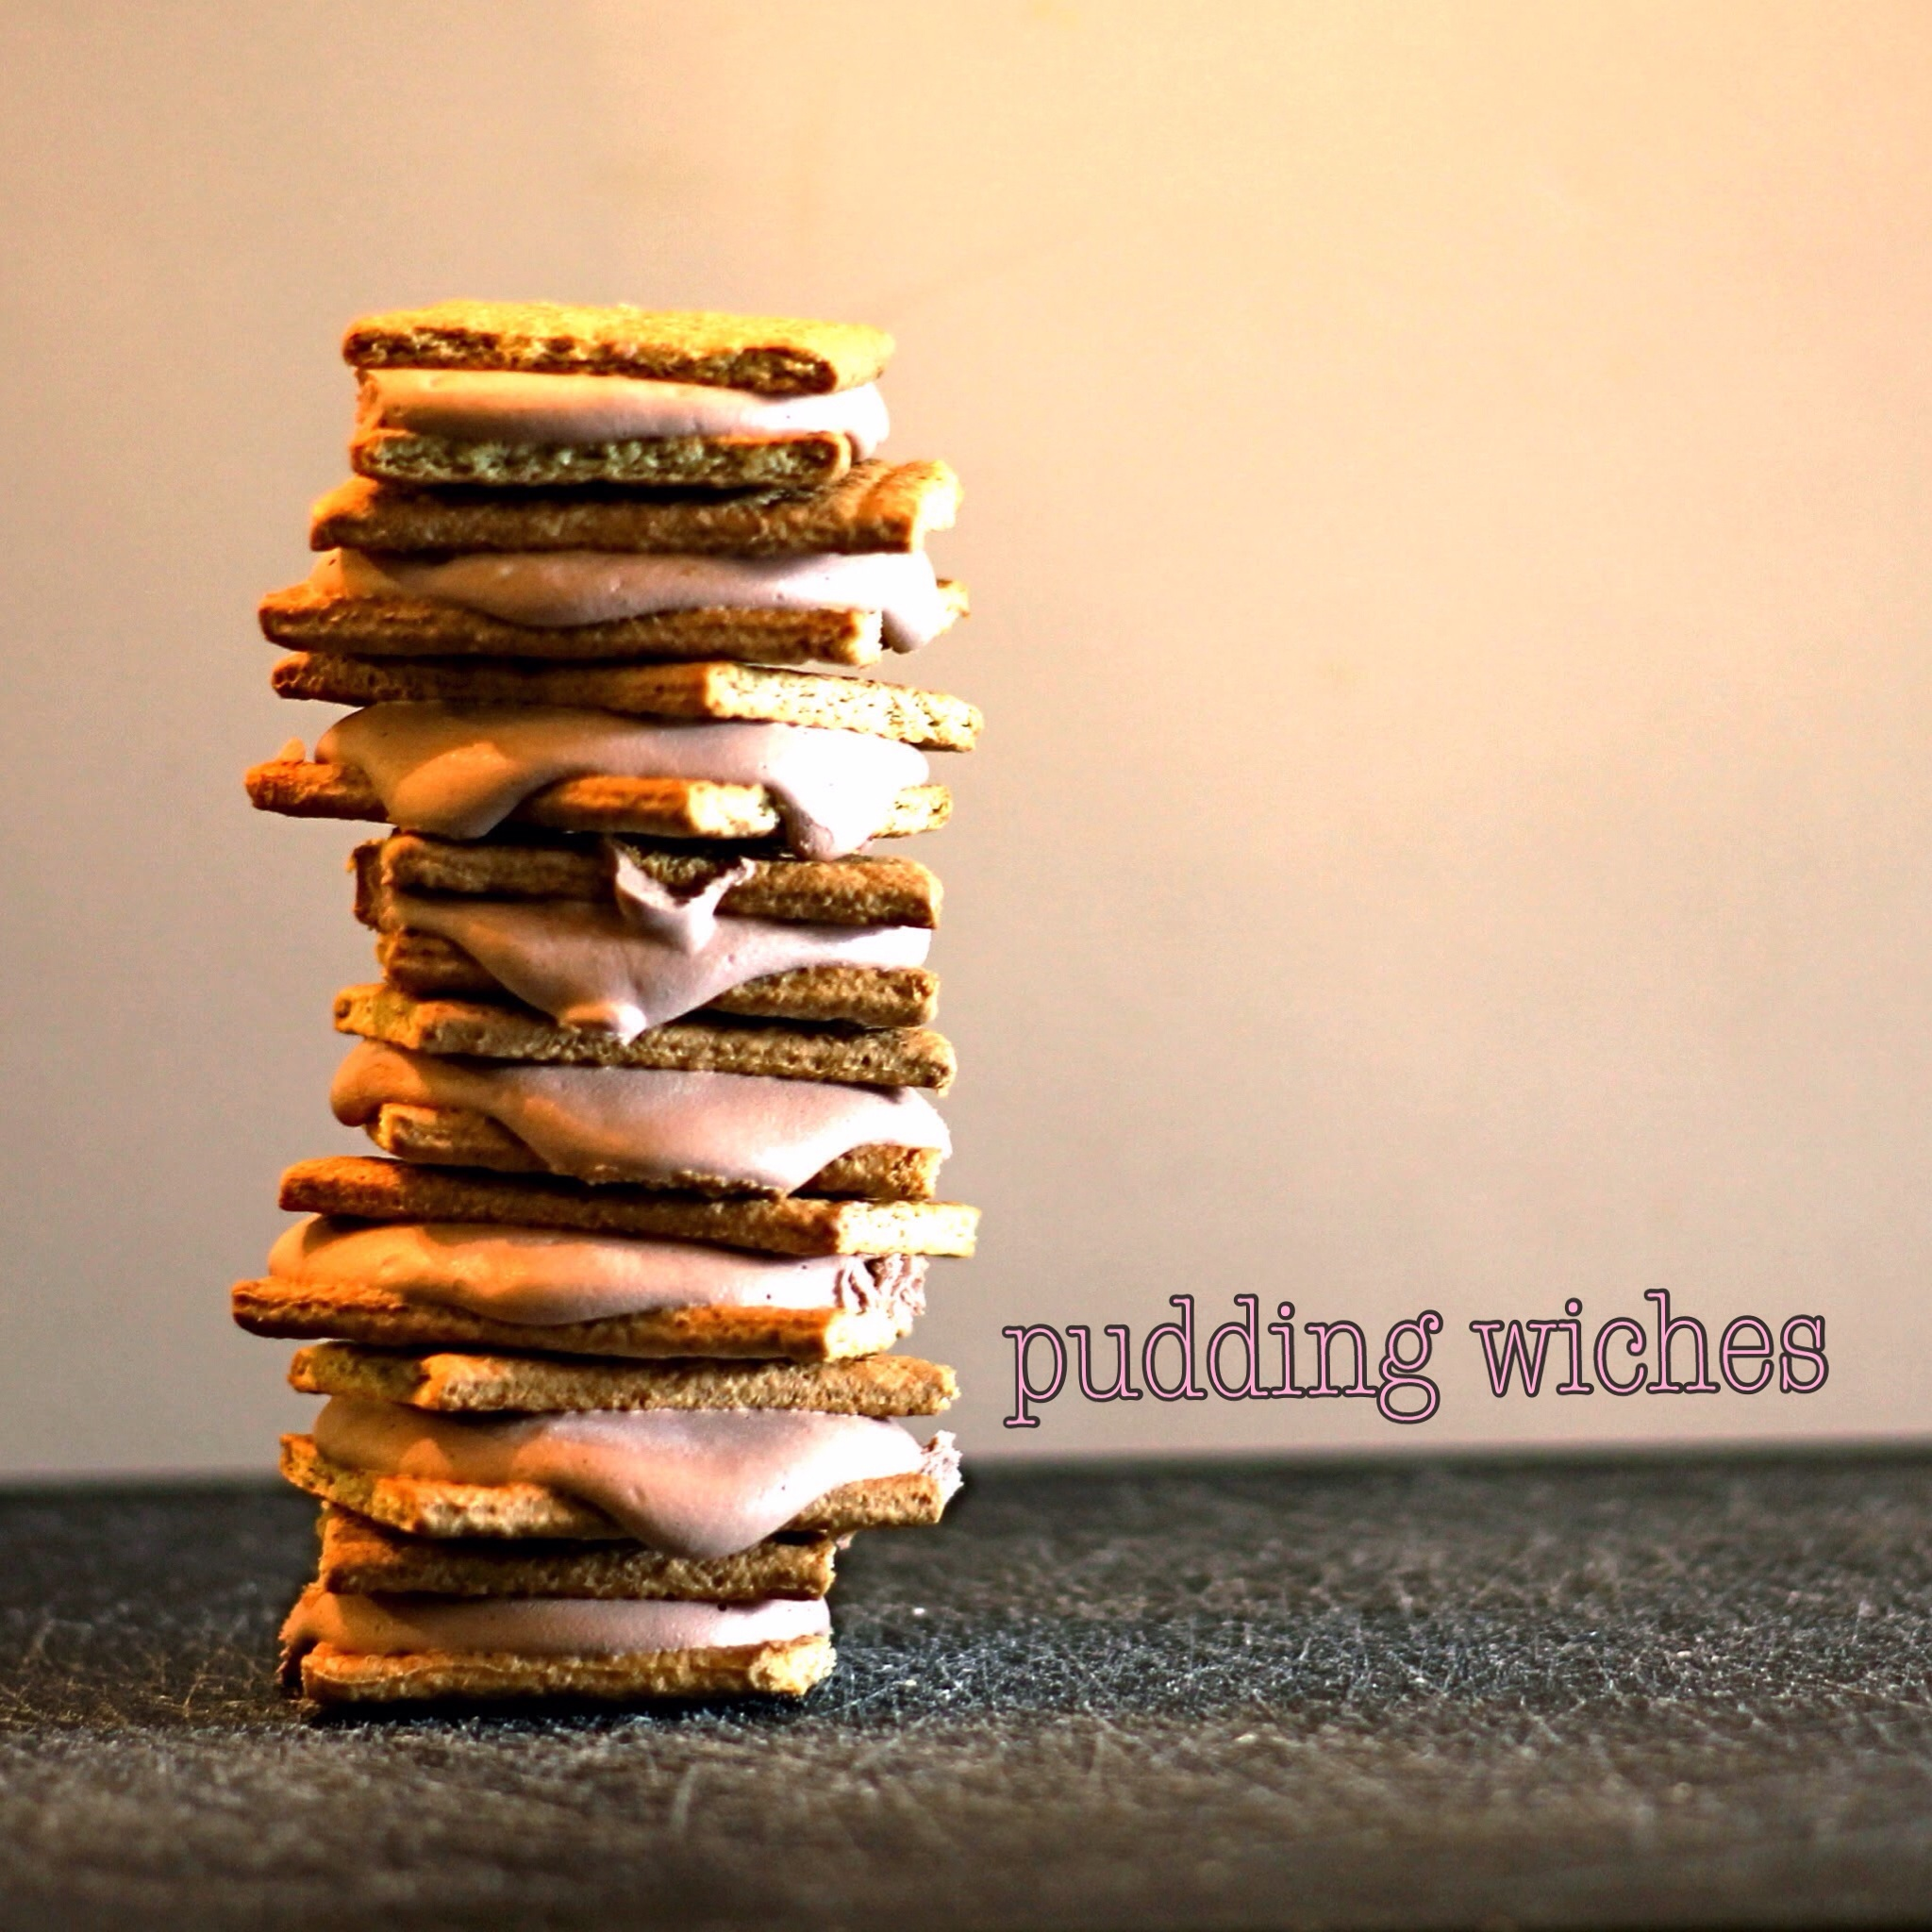 pudding-wiches